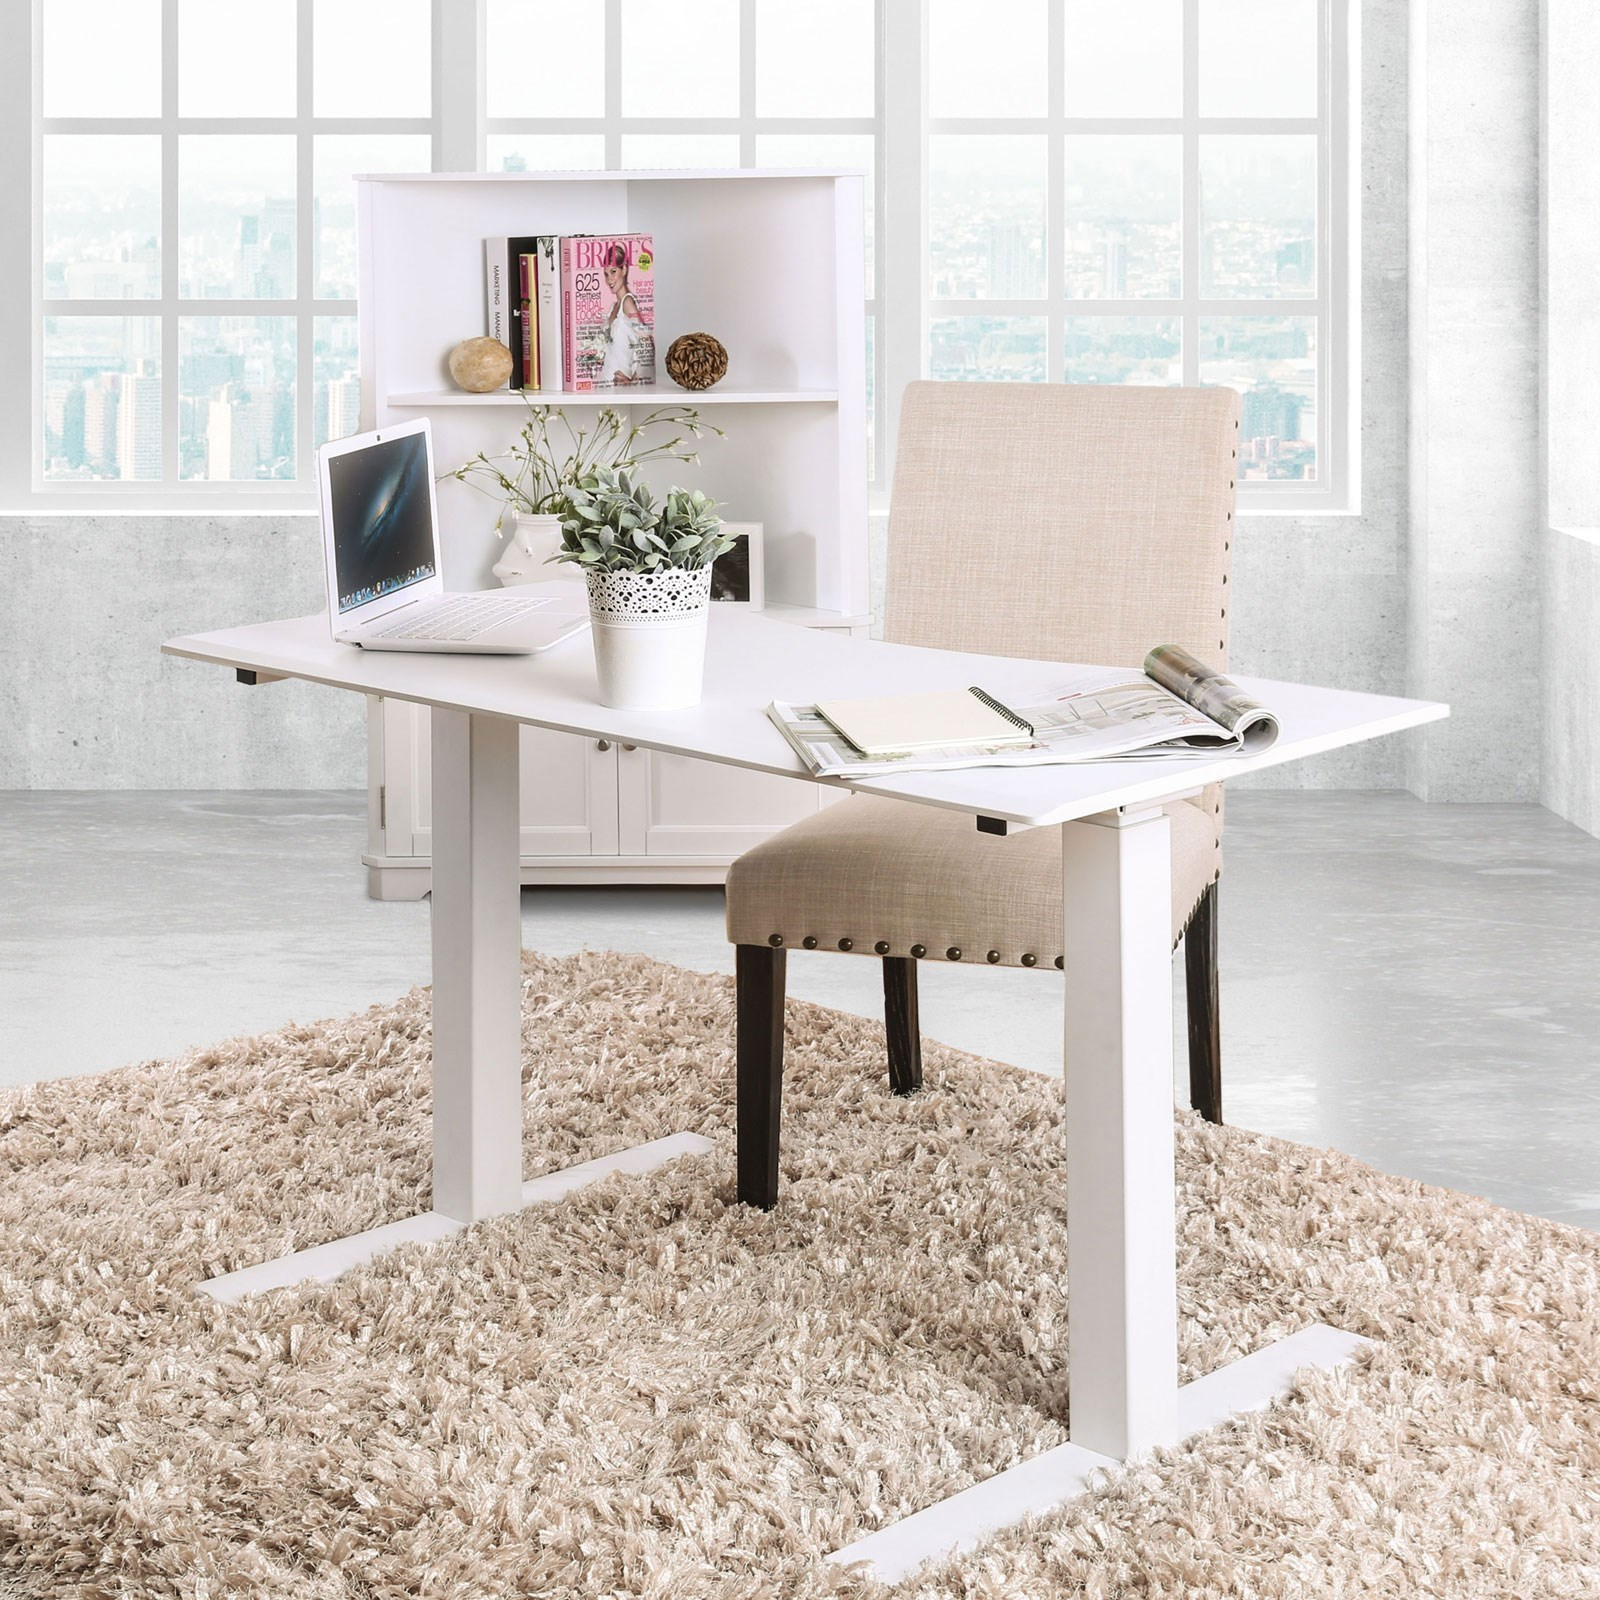 Adjustable Ht. Desk - Large